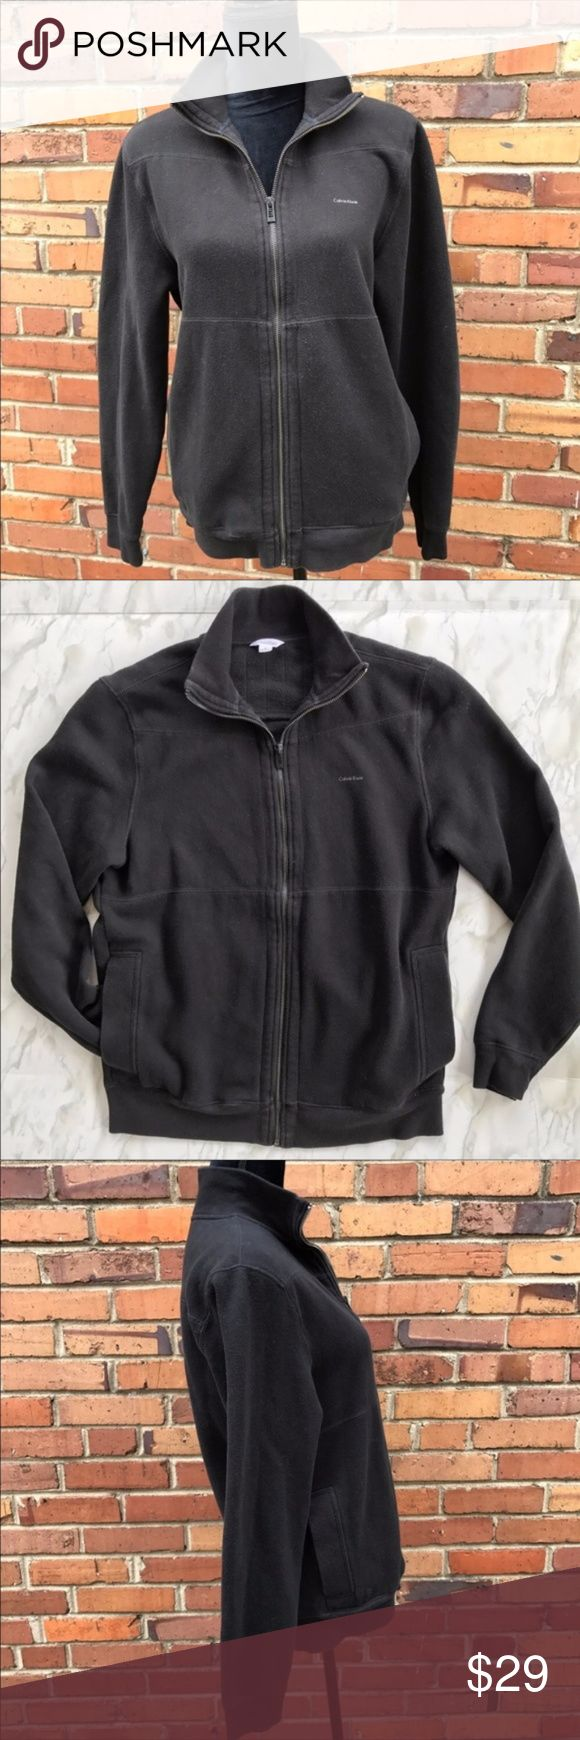 Calvin Klein Logo Zip Up Black Jacket Size Small Stay warm while looking cool with this Calvin Klein jacket. The timeless and subtle Calvin Klein logo never goes out of style so this will last you for many seasons. Grow it over your yoga tank, leave it half zipped over a t-shirt, or layer it under a bomber jacket, no matter how you style it you'll have that cool and classic Calvin look. Preowned from a smoke free home, in excellent used condition. Check out the other items in my closet and…